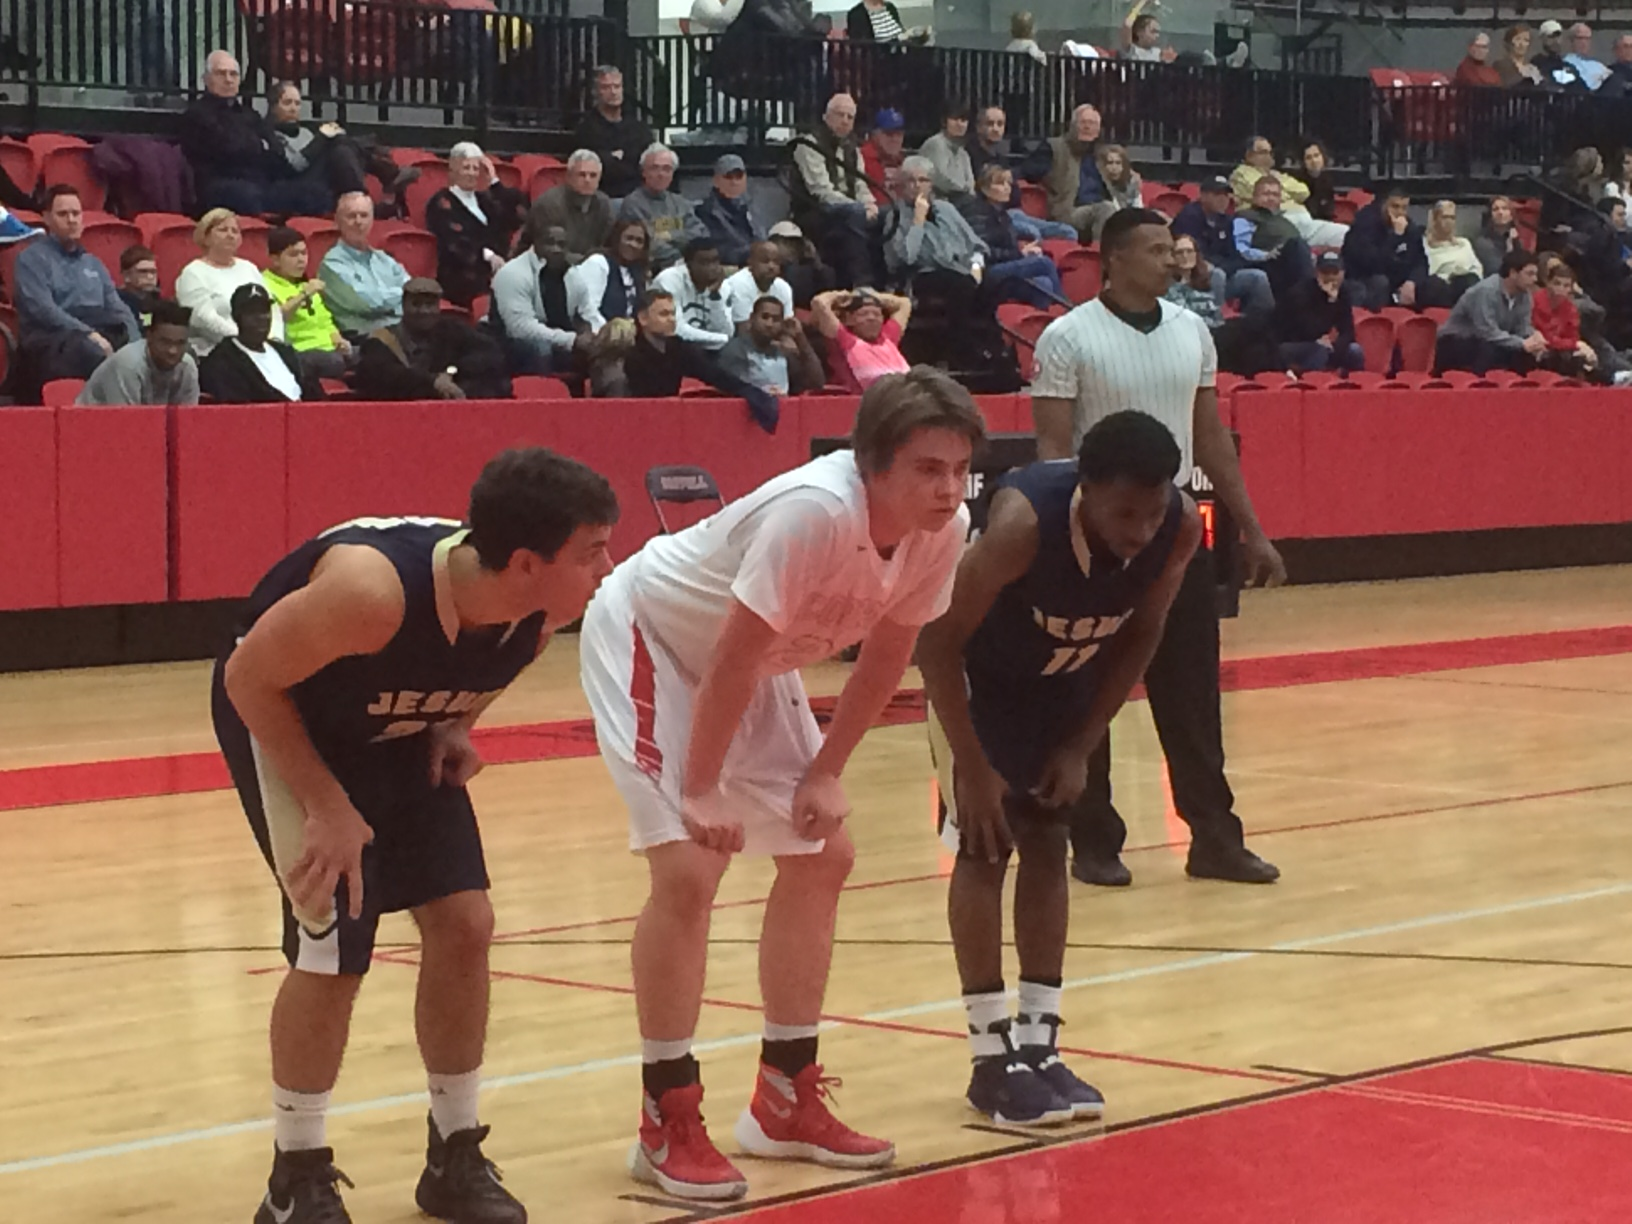 Senior forward Jackson Solari gets set before a free throw during Coppell's 58-53 victory over Jesuit on Tuesday, December 20. Solari had his best game of the year, scoring 17 and rebounding well.